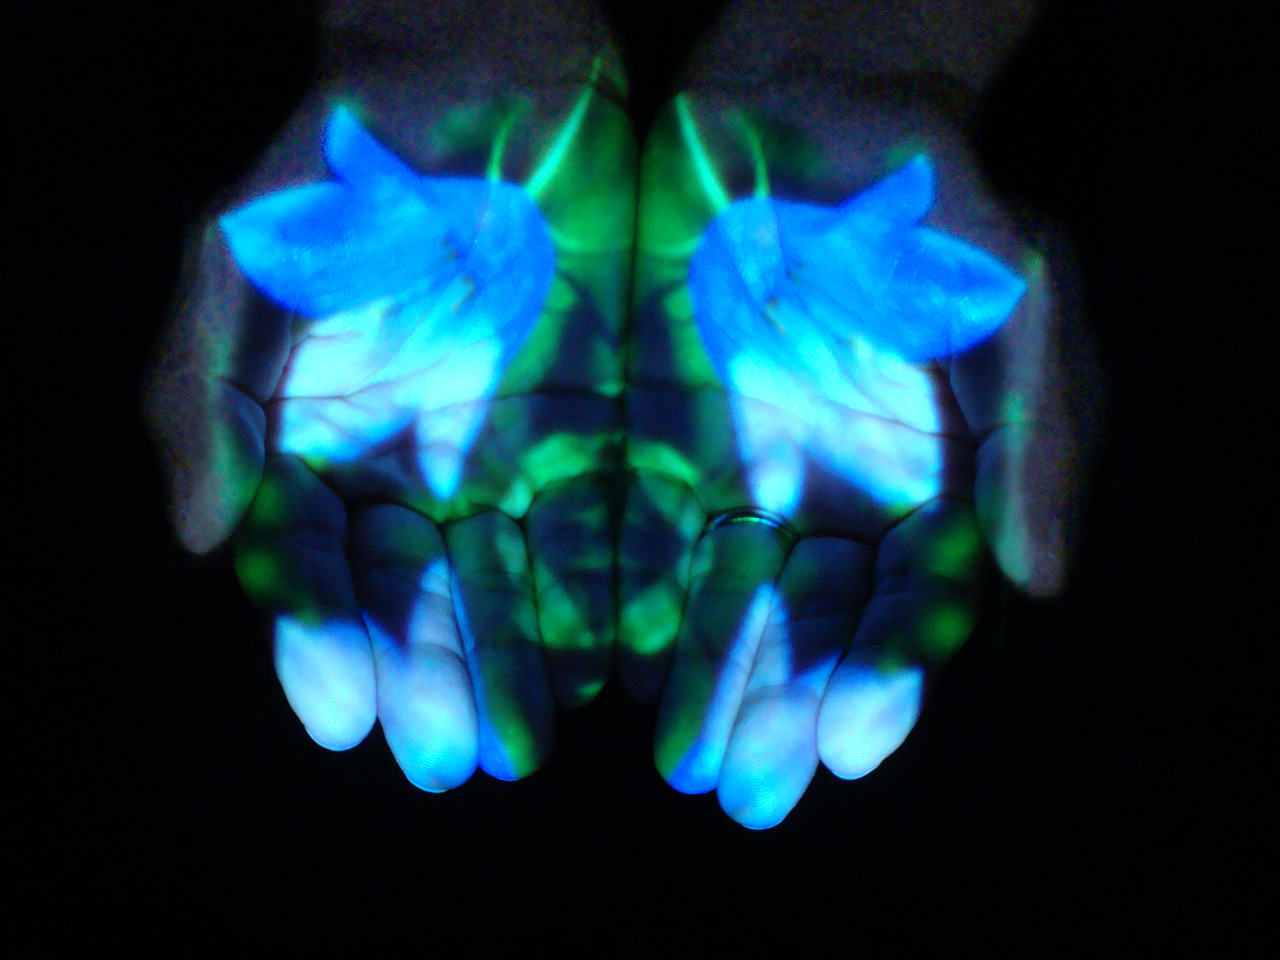 Mudra Flower Shower: Harebell (freedom from fear to sense the entire universe as home), Suran Song 2014